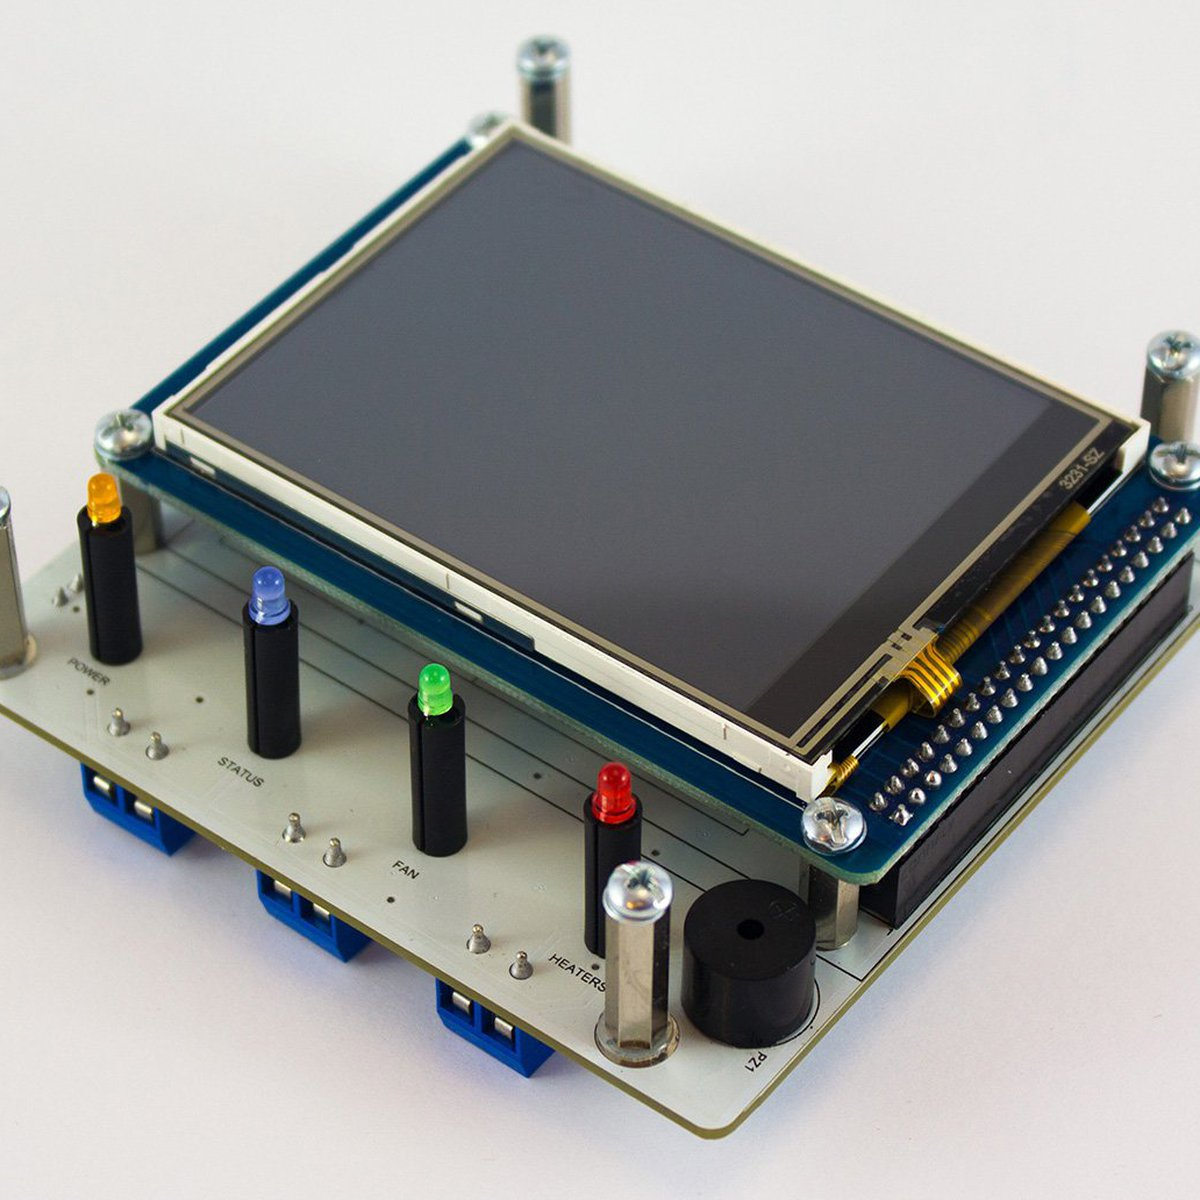 X Toaster Oven Reflow Controller Kit From Breaktech On Circuit Board We Assemble With The Exception Of Rohscompliant Boards Tindie